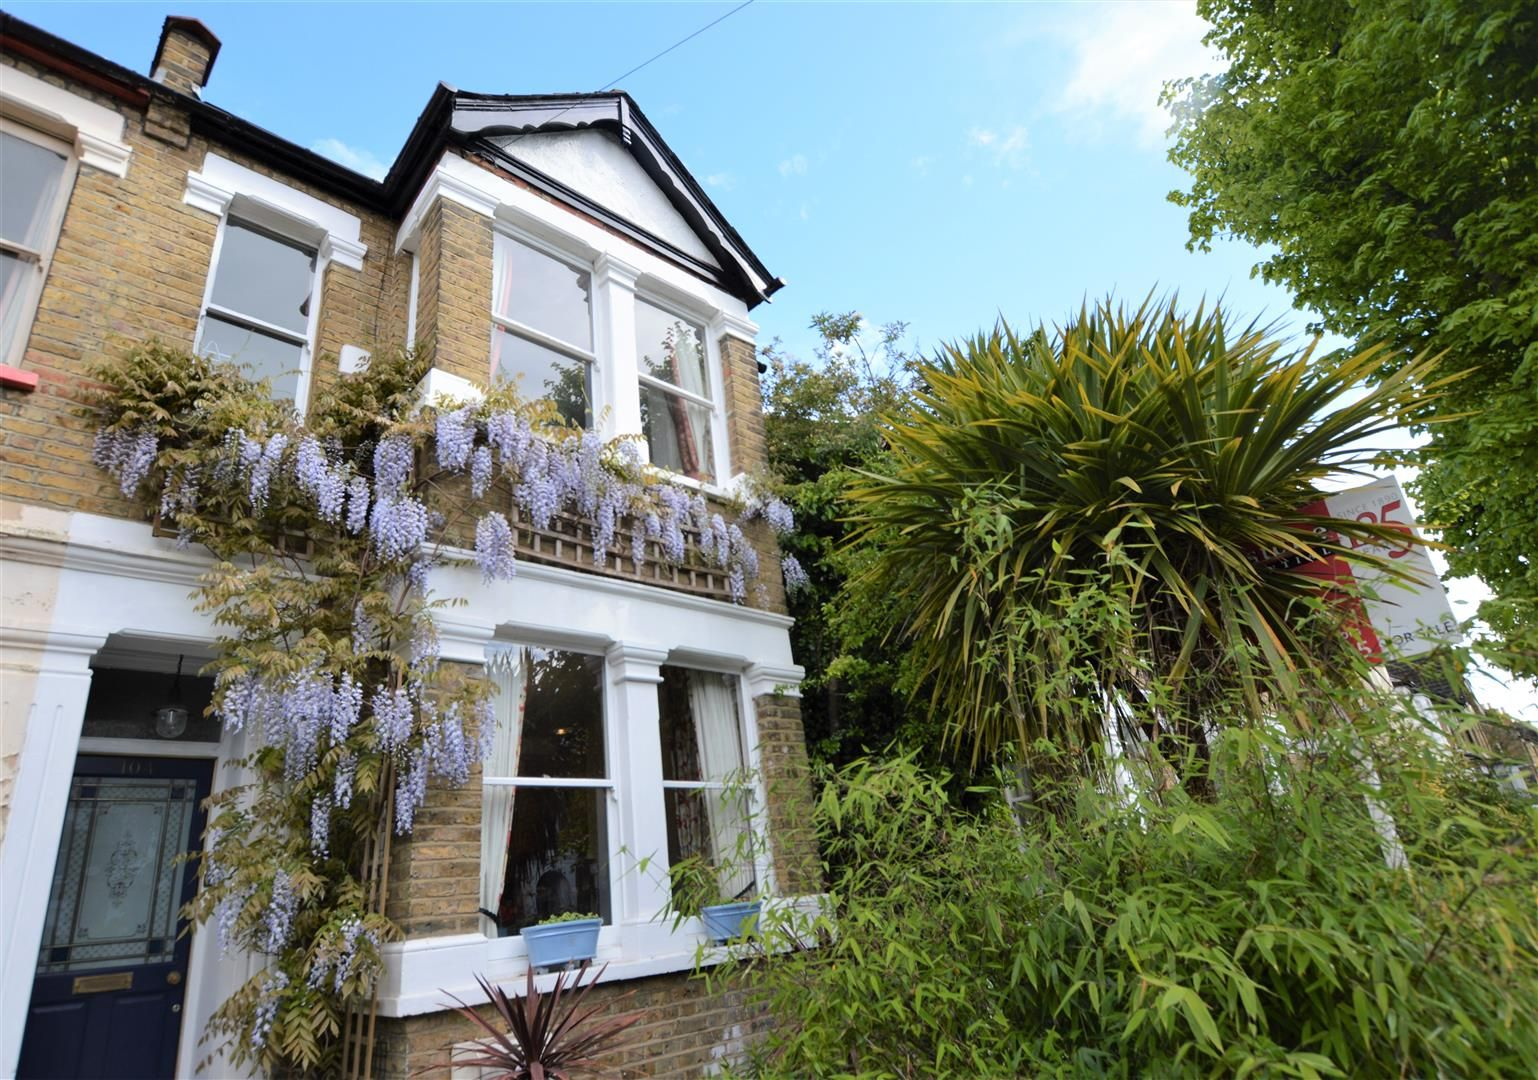 Property photo 1 of 18. 104 St Stephens Road Front Shot2.Jpg